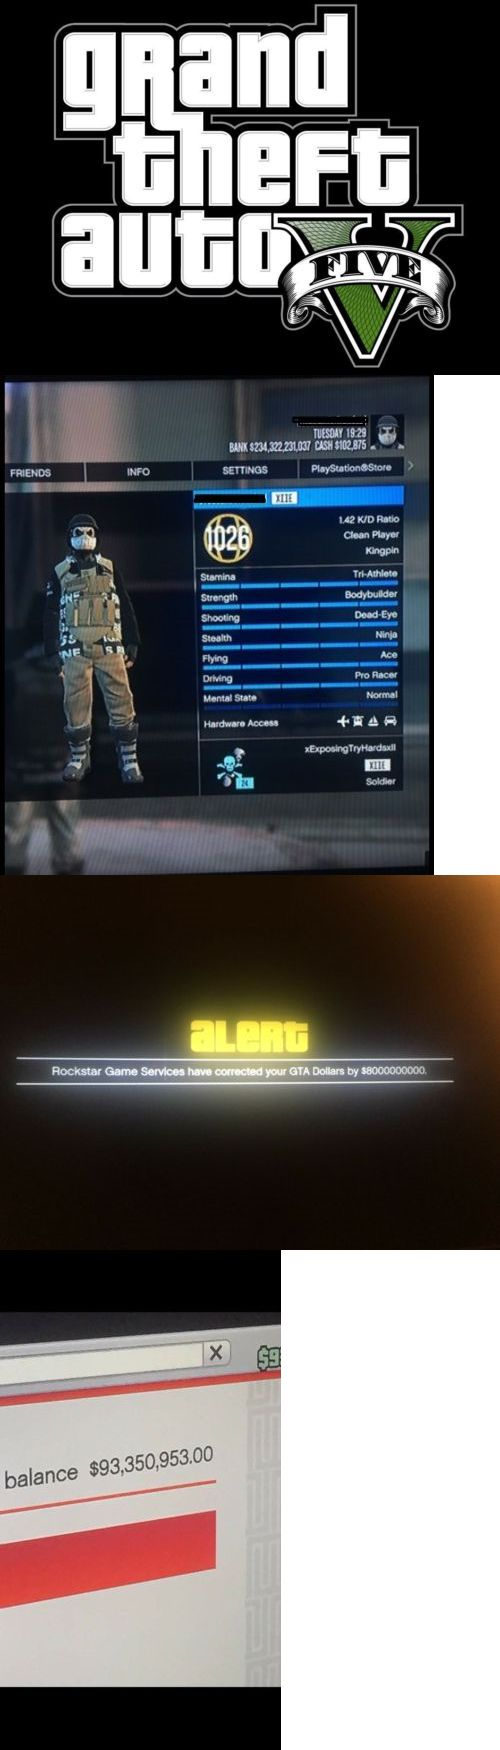 Strategy Guides and Cheats 156595: Gta V Modded Account